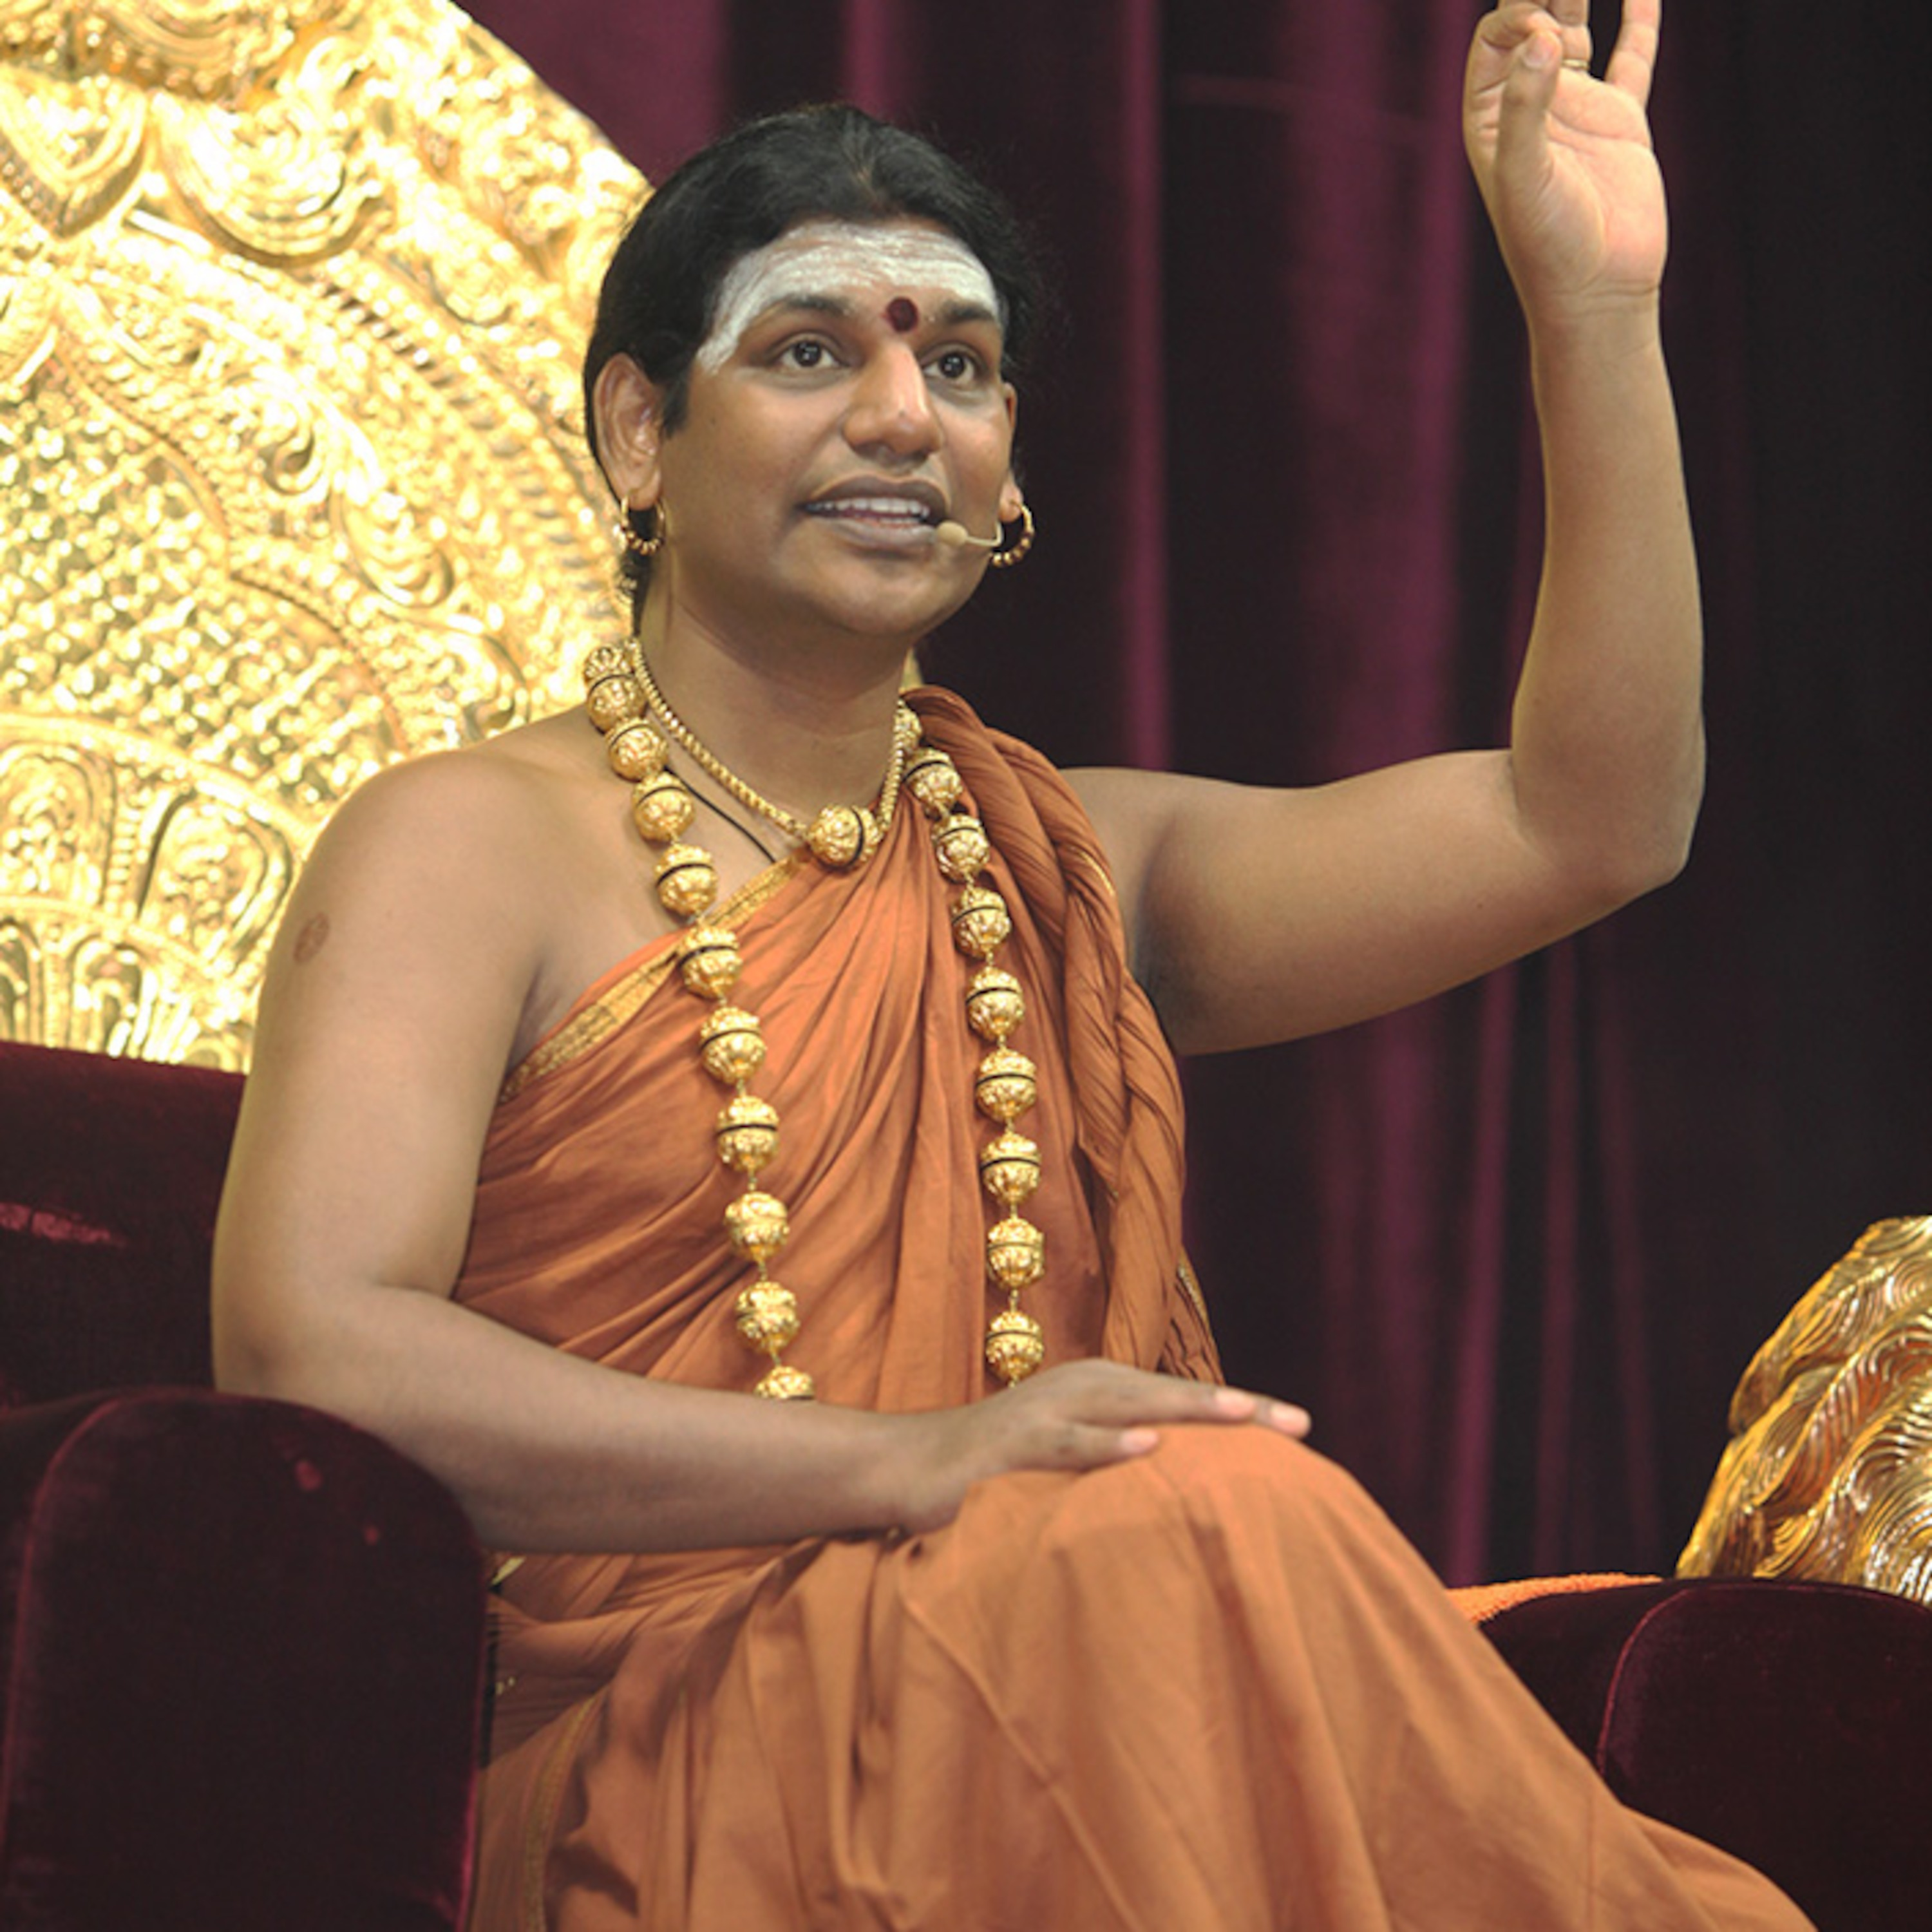 Episode 107 - Nithyananda Podcast - Life is for Enriching, Part I